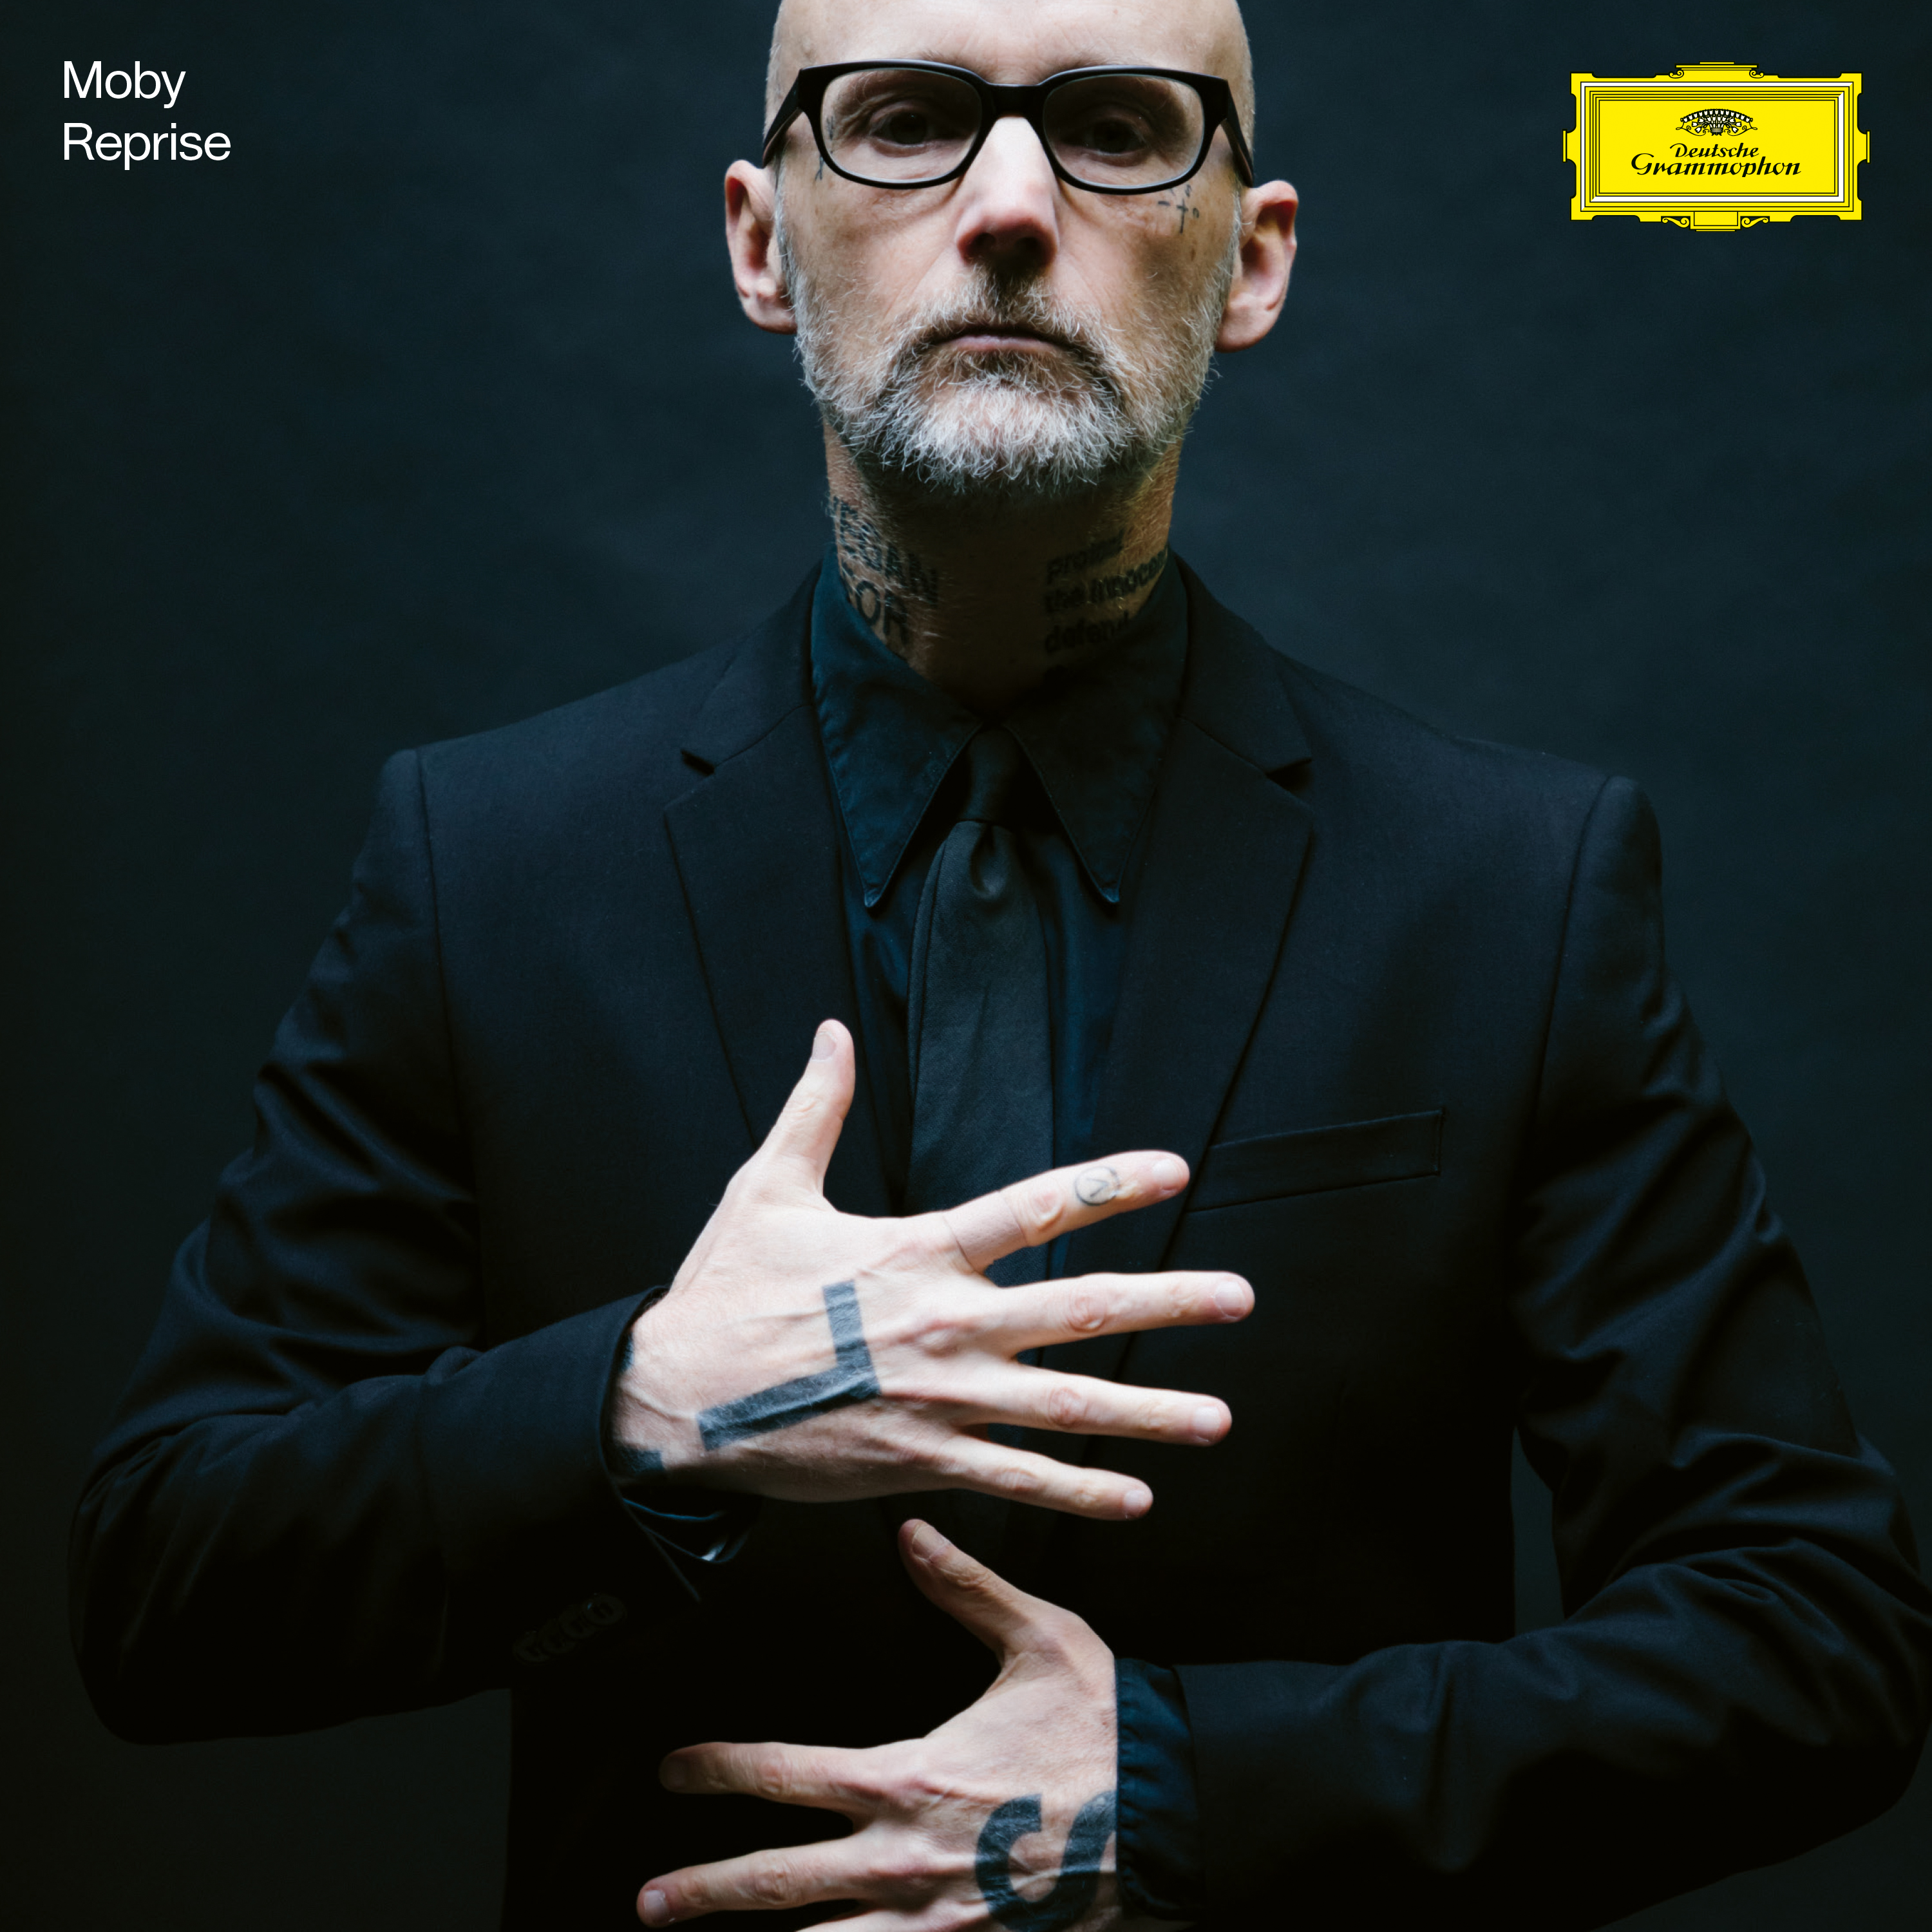 Le nuove sinfonie del maestro Moby